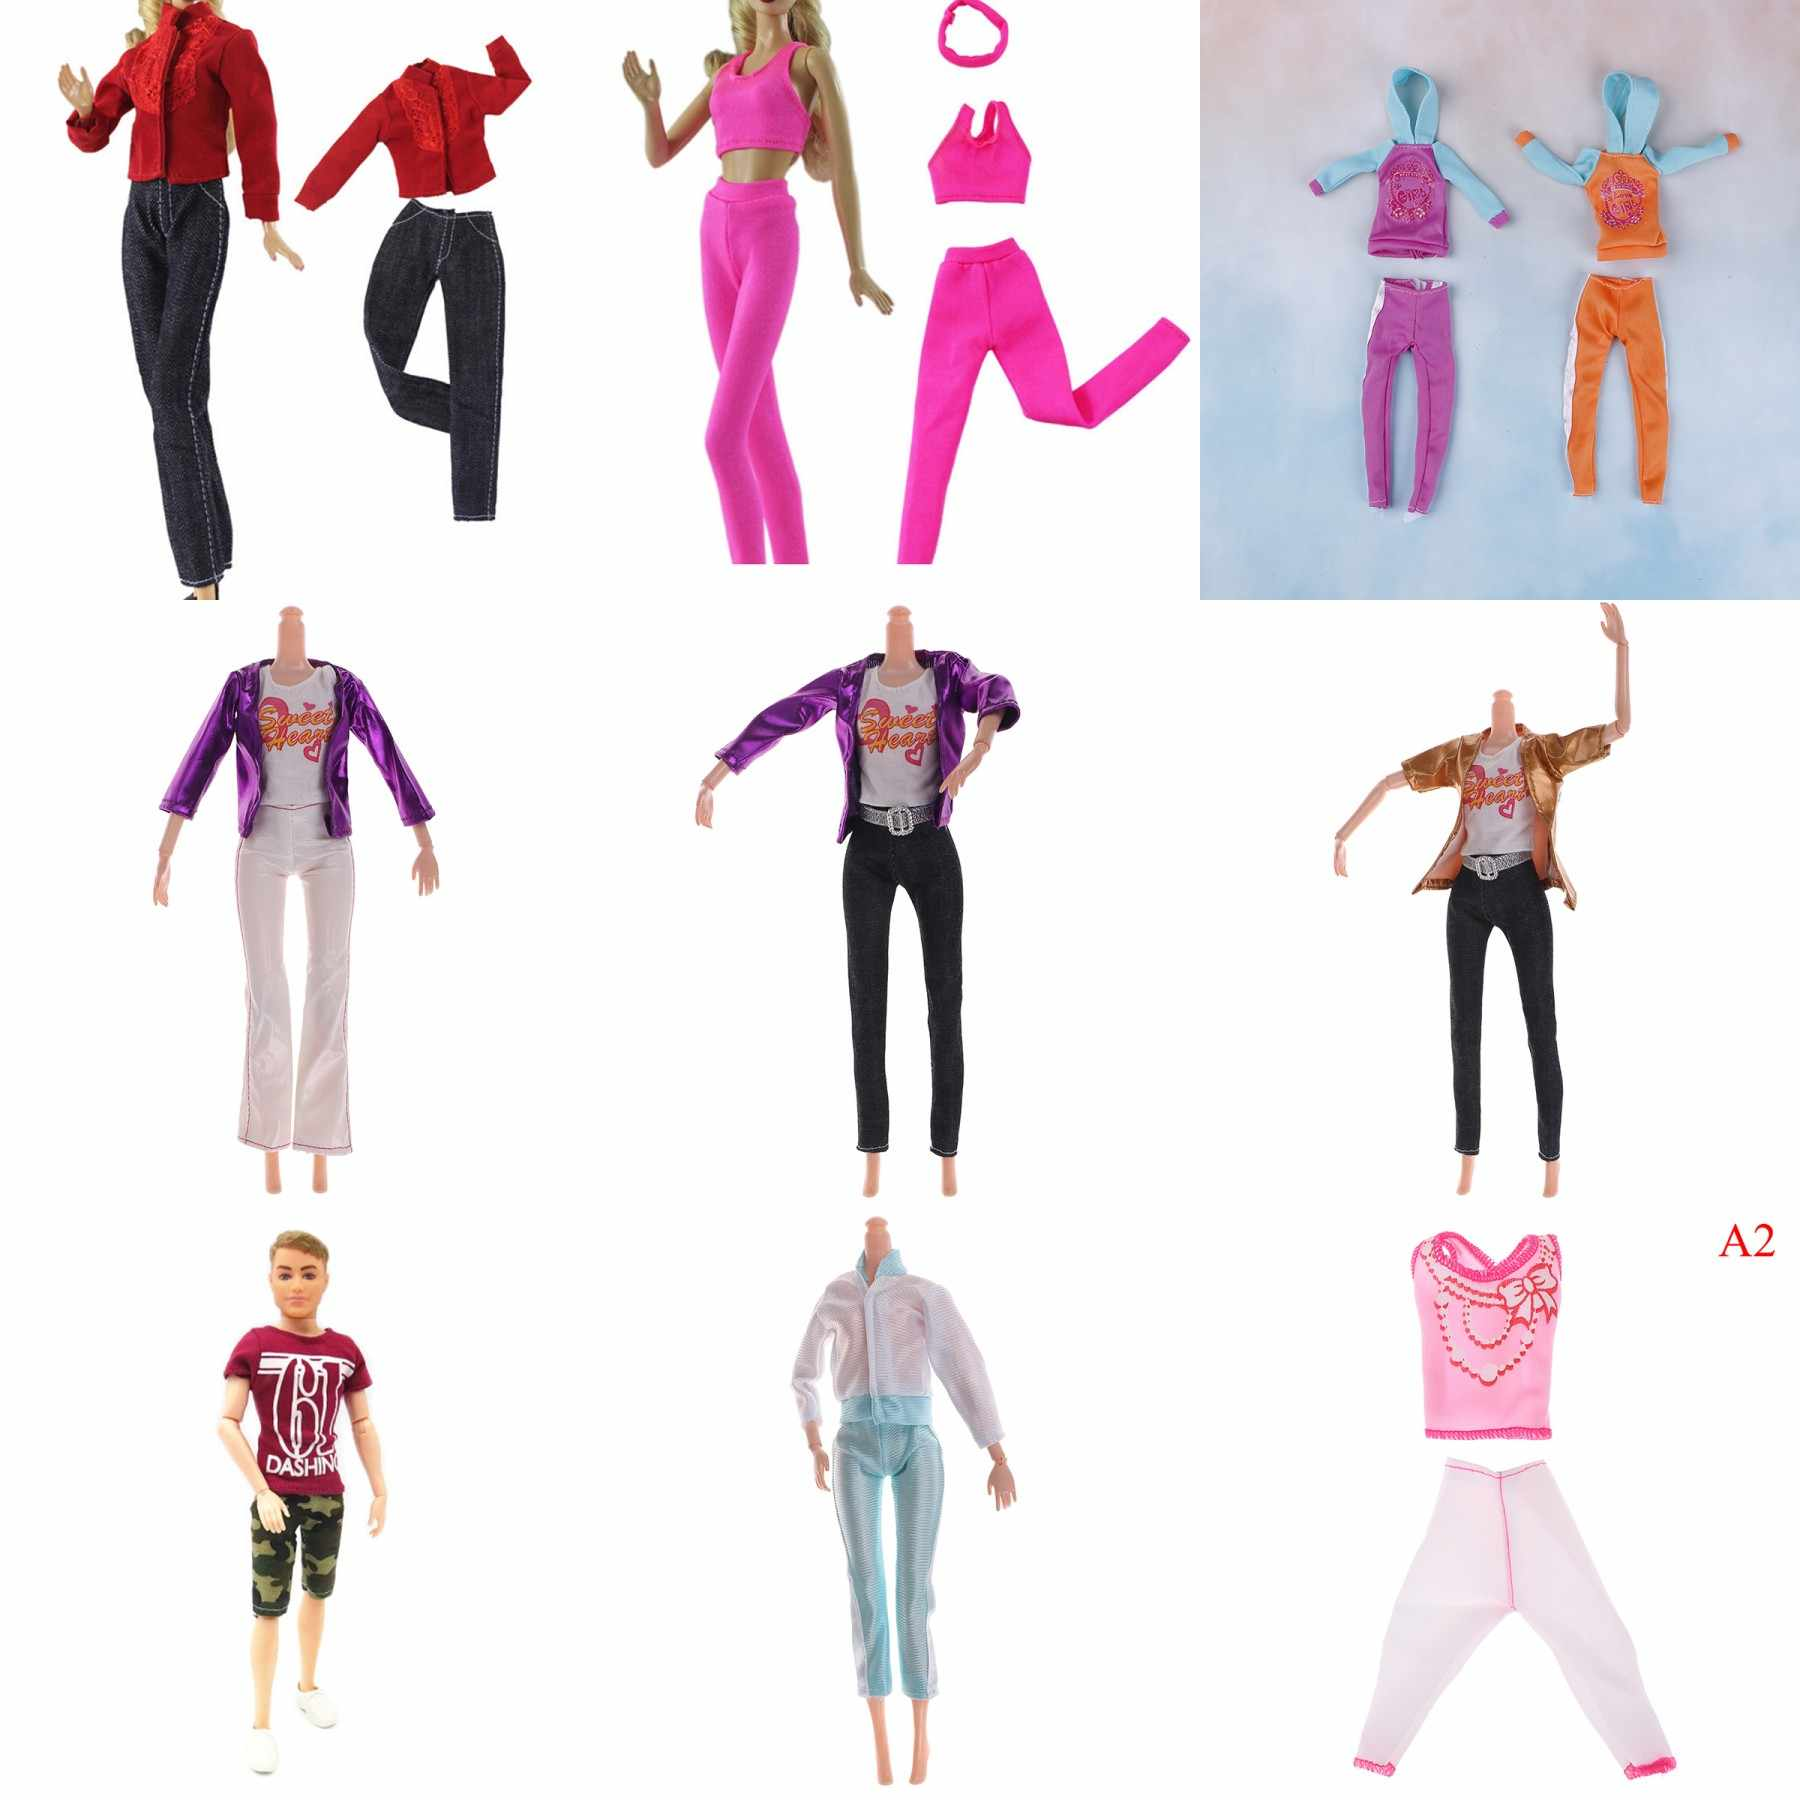 Fashion Sport Outfit Casual Daily Wear T-Shirt Trousers Colorful Cap Yoga Suit Accessories Clothes For Doll Baby Gift Toy